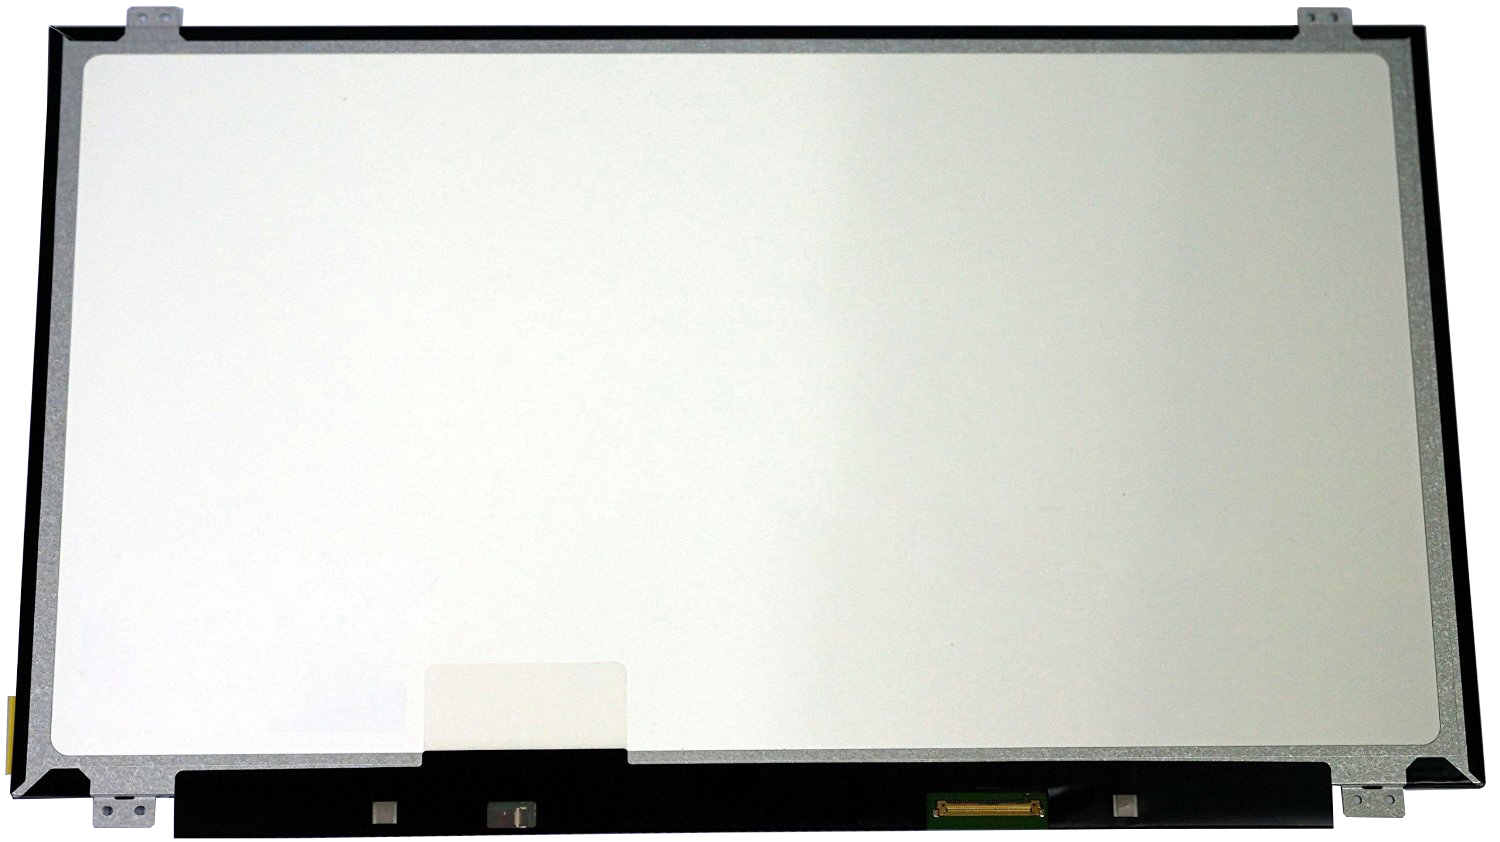 QuYing Laptop LCD Screen for Acer Aspire ETHOS 5951G TIMELINE 5745-7531 Series (15.6 inch 1366x768 40pin N) quying laptop lcd screen for acer aspire ethos 5951g timeline 5745 7531 series 15 6 inch 1366x768 40pin n